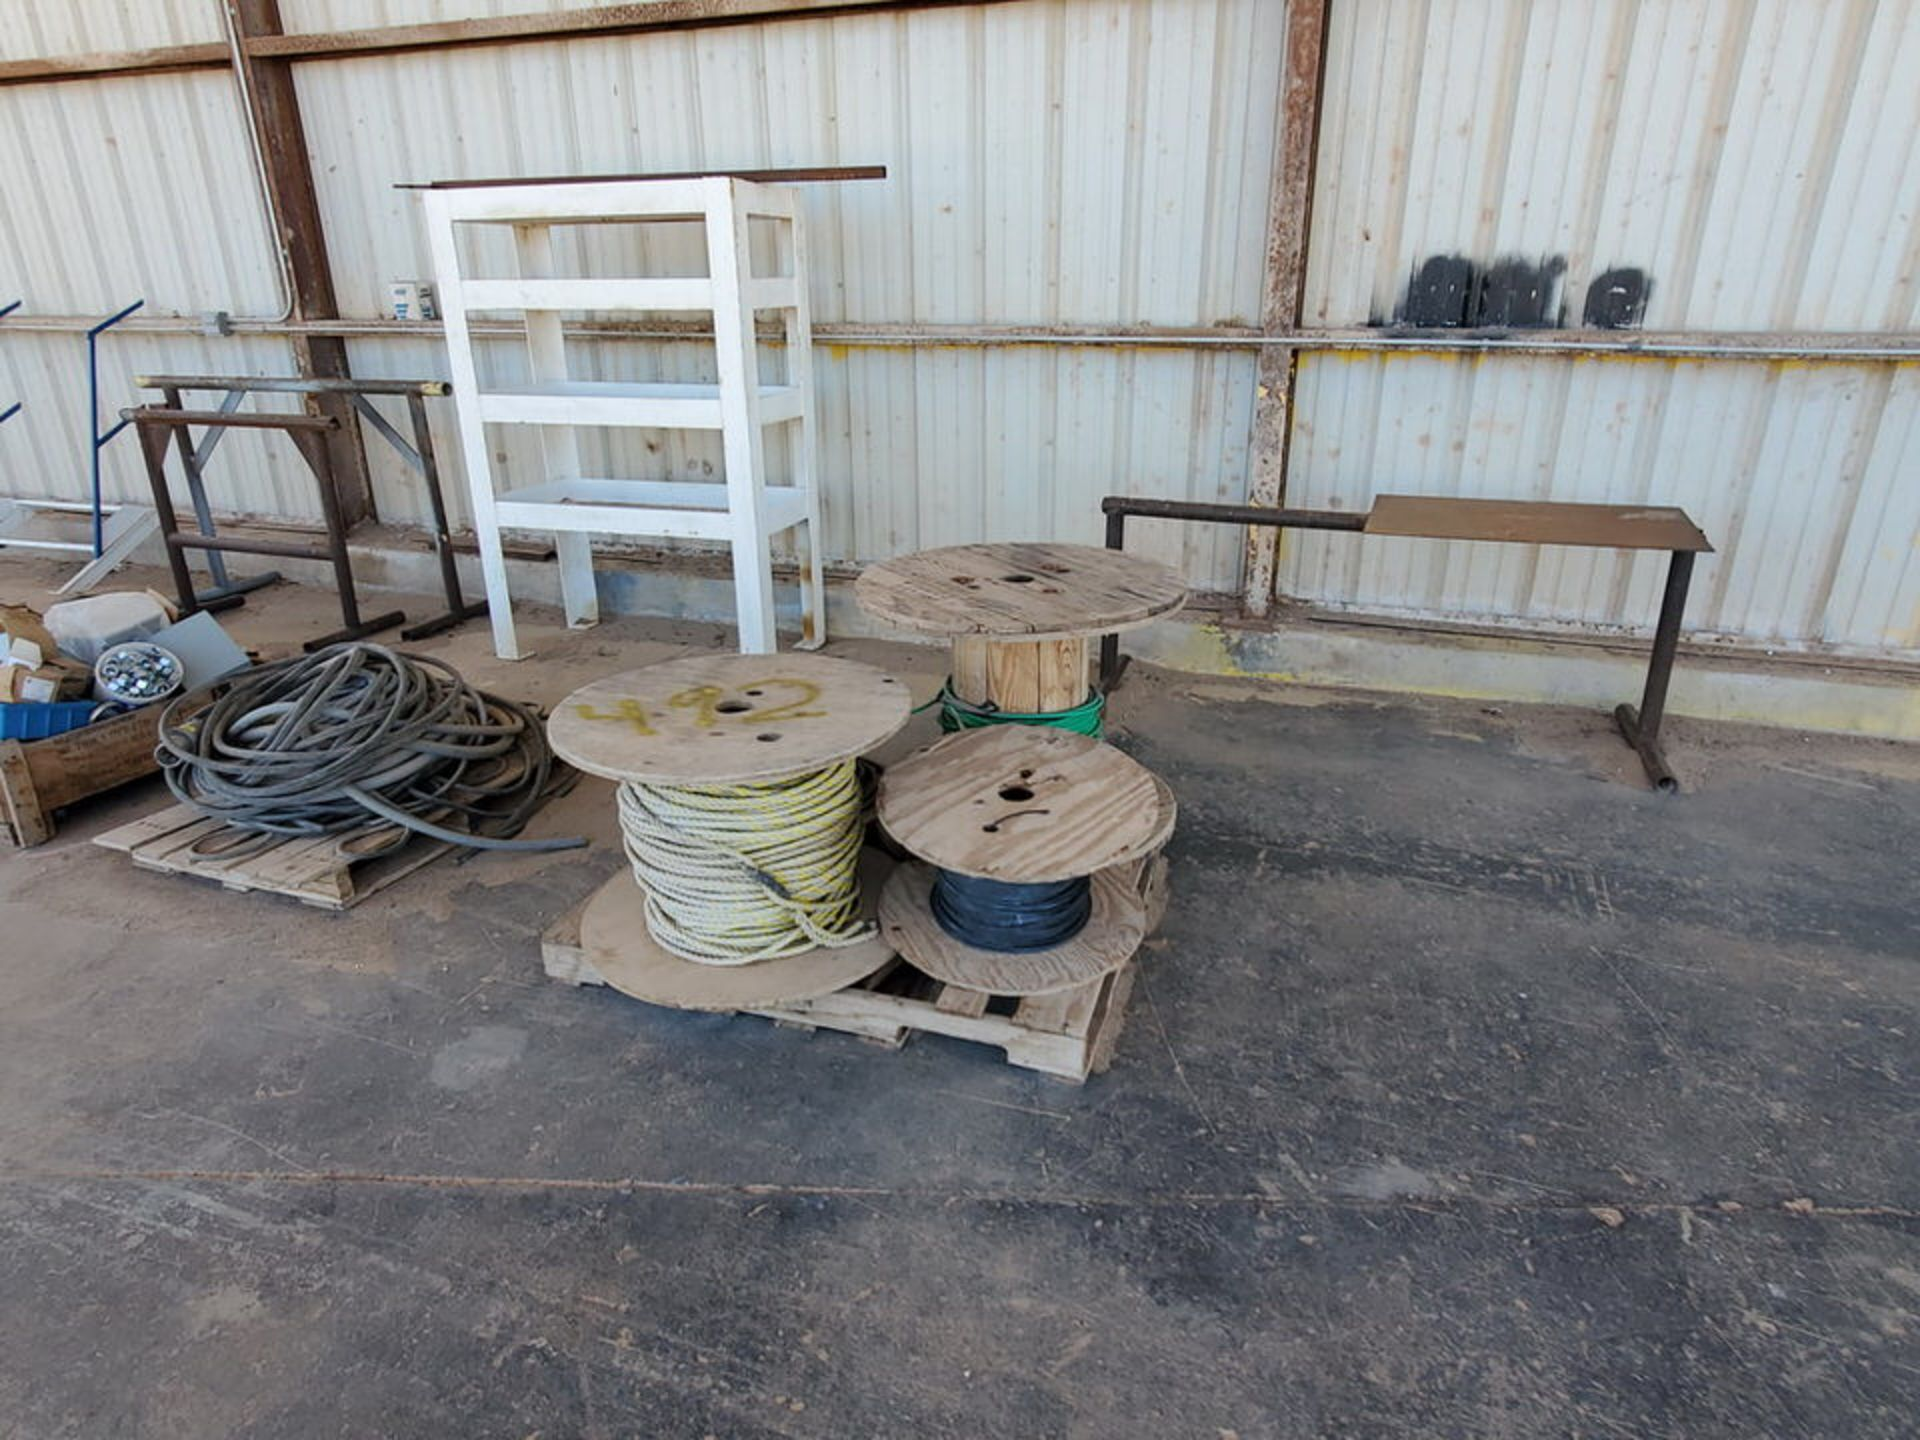 Misc. Matl. To Include But Not Limited To: Lift Basket, Welding Table, Sheet Metal, Ele Wire, Rope - Image 5 of 13